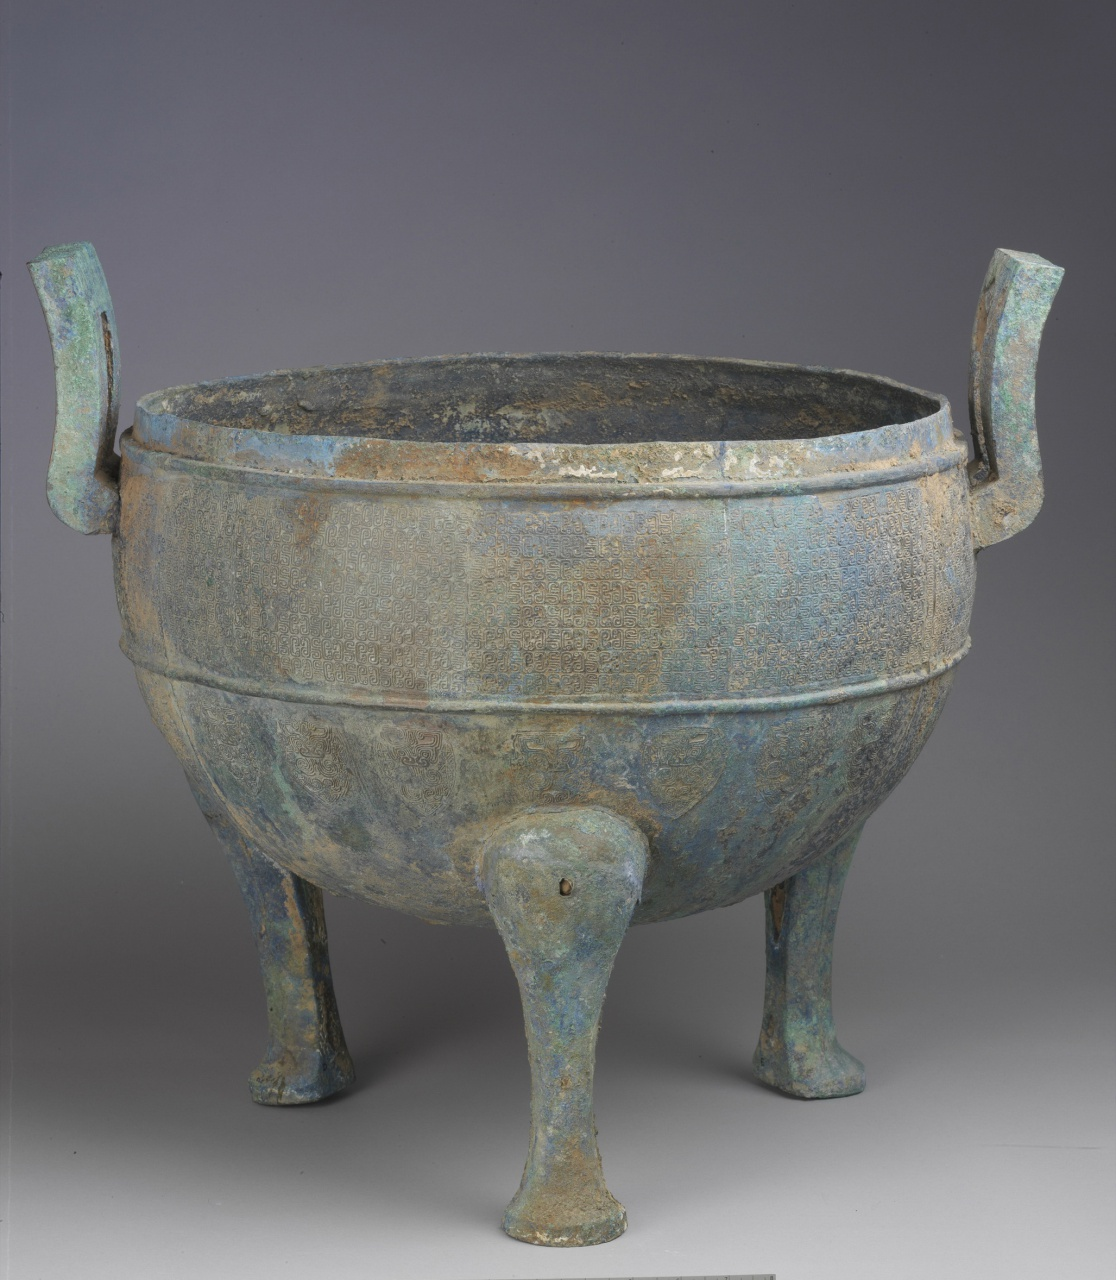 Ting Cauldron with Coiled Snake Pattern